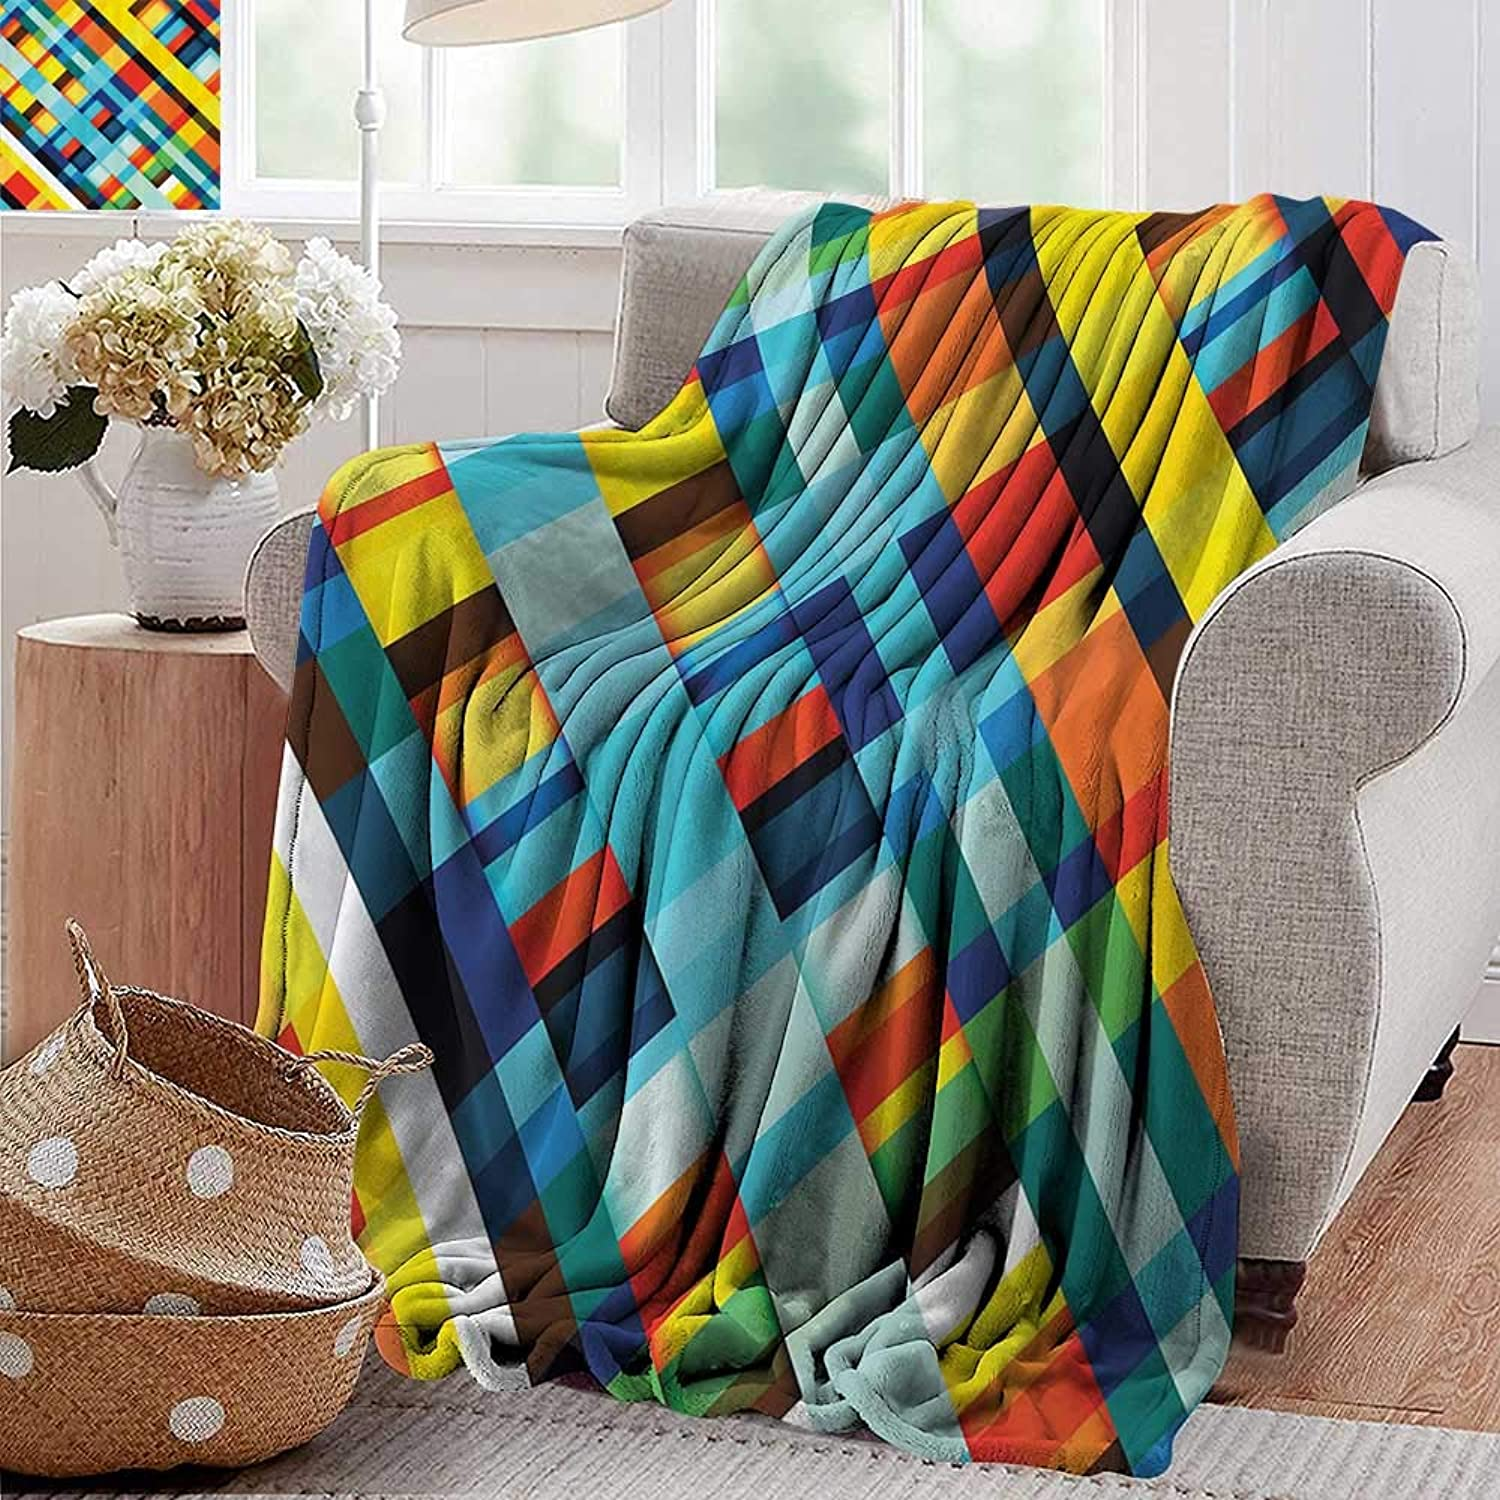 PearlRolan Weighted Blanket for Kids,colorful Home Decor,Vivid Lines Stripes with Diagonal Elements Retro Layout with Modern Touch,Multi,Weighted Blanket for Adults Kids, Better Deeper Sleep 50 x60